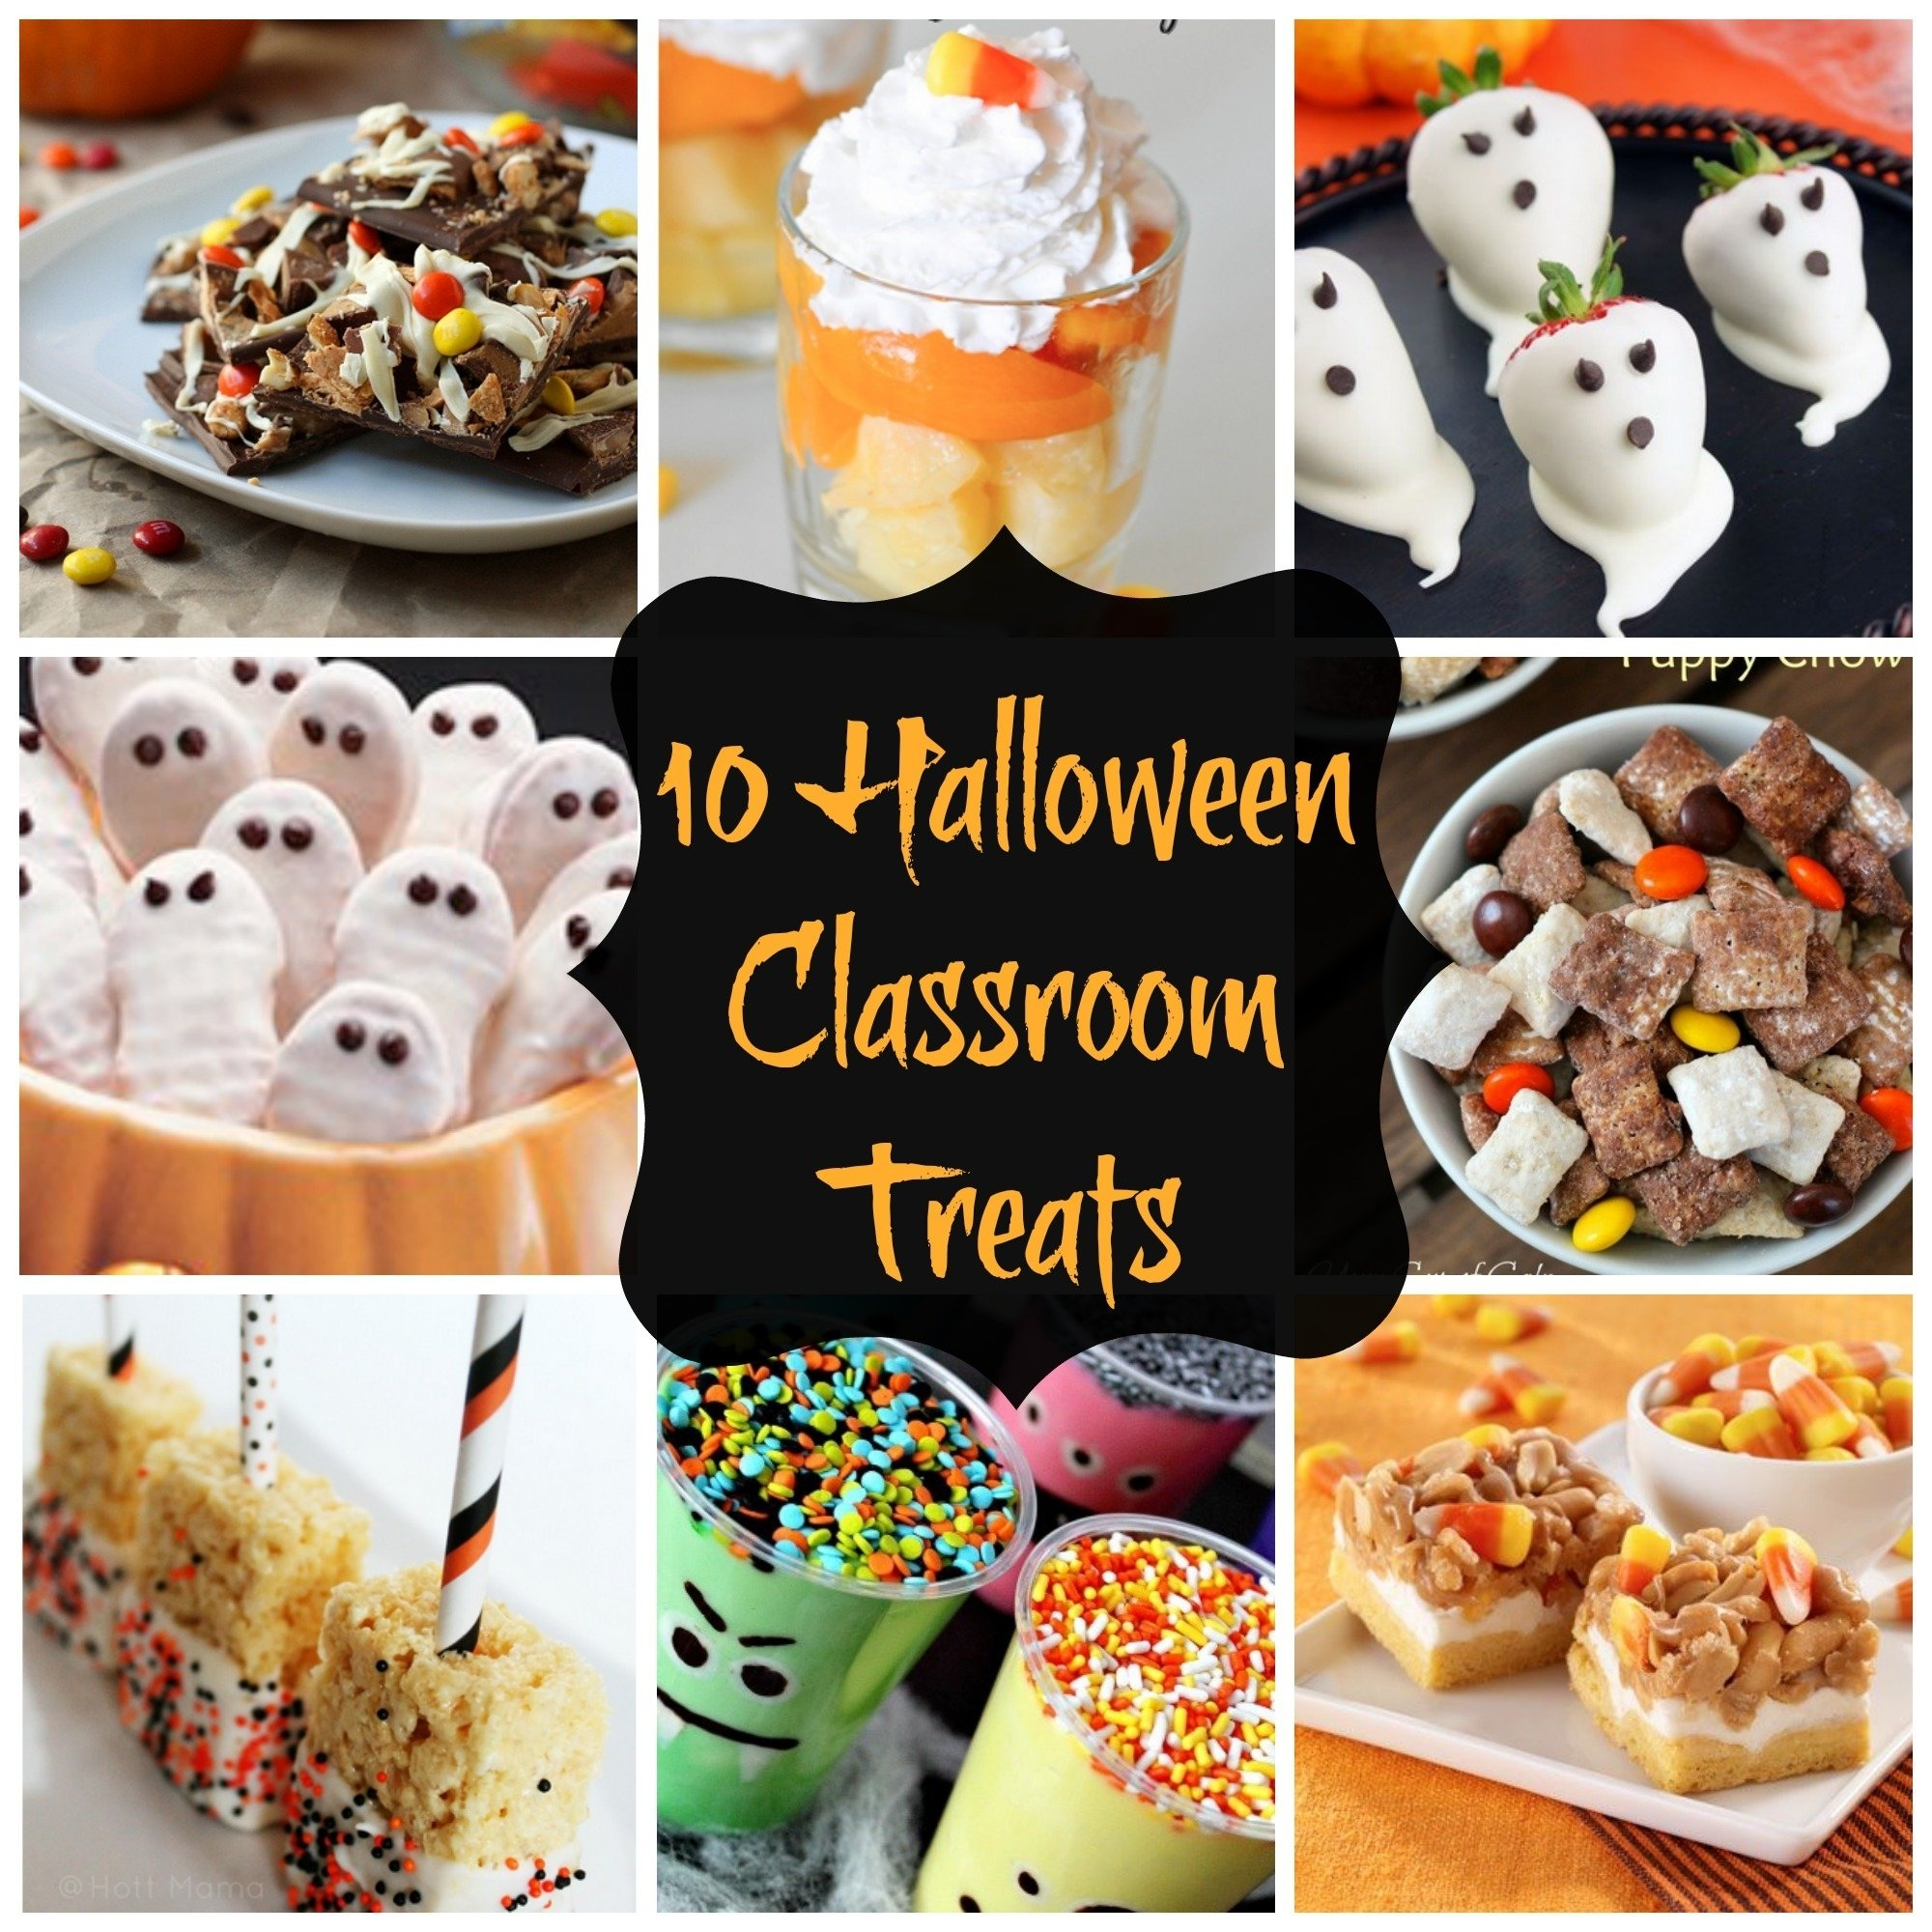 10 halloween treats for the classroom - savvy sassy moms